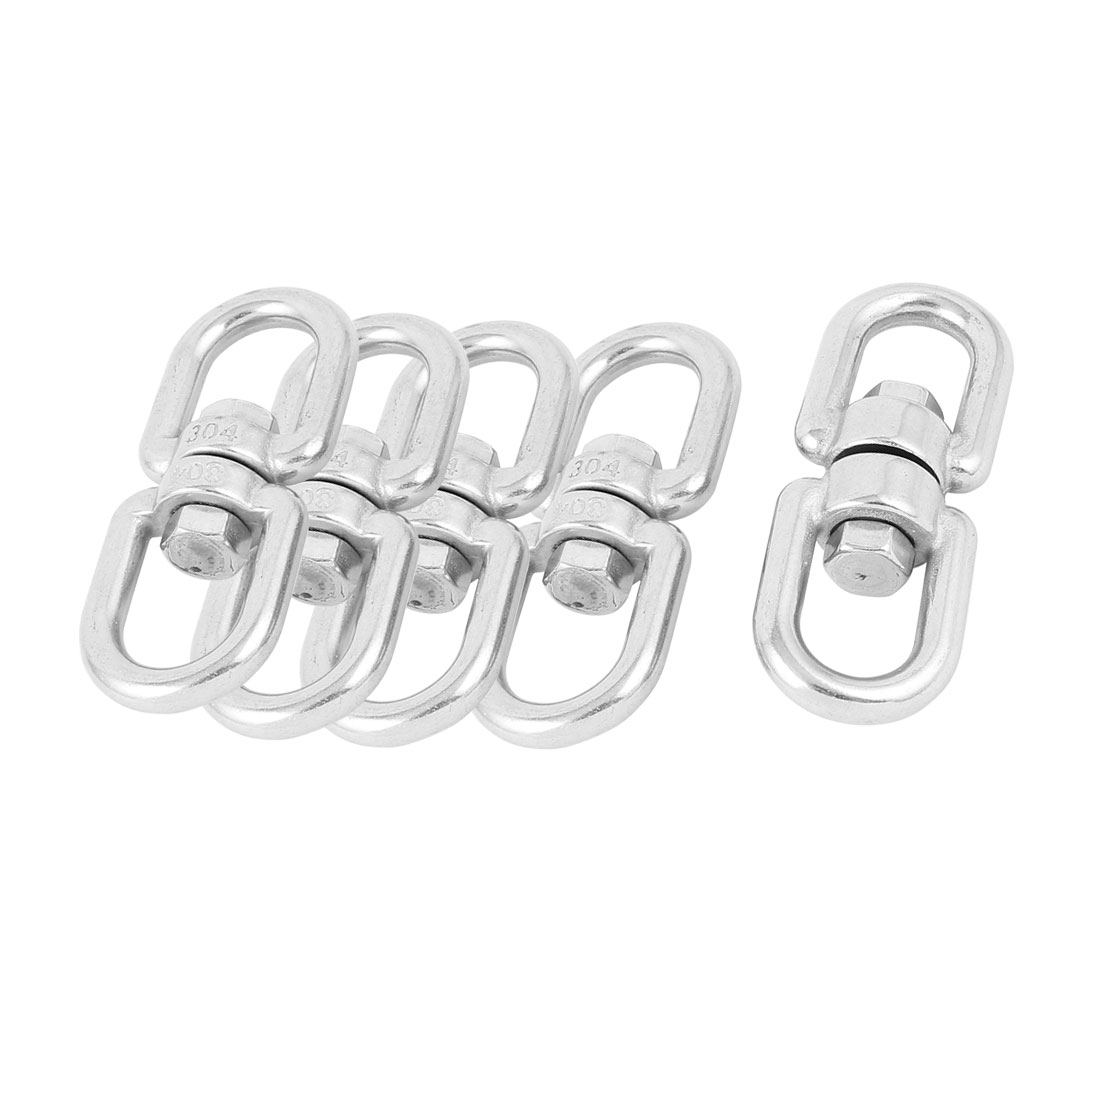 5 Pcs 8mm Thickness 304 Stainless Steel Double D Shape Eye Swivel Hook Shackle